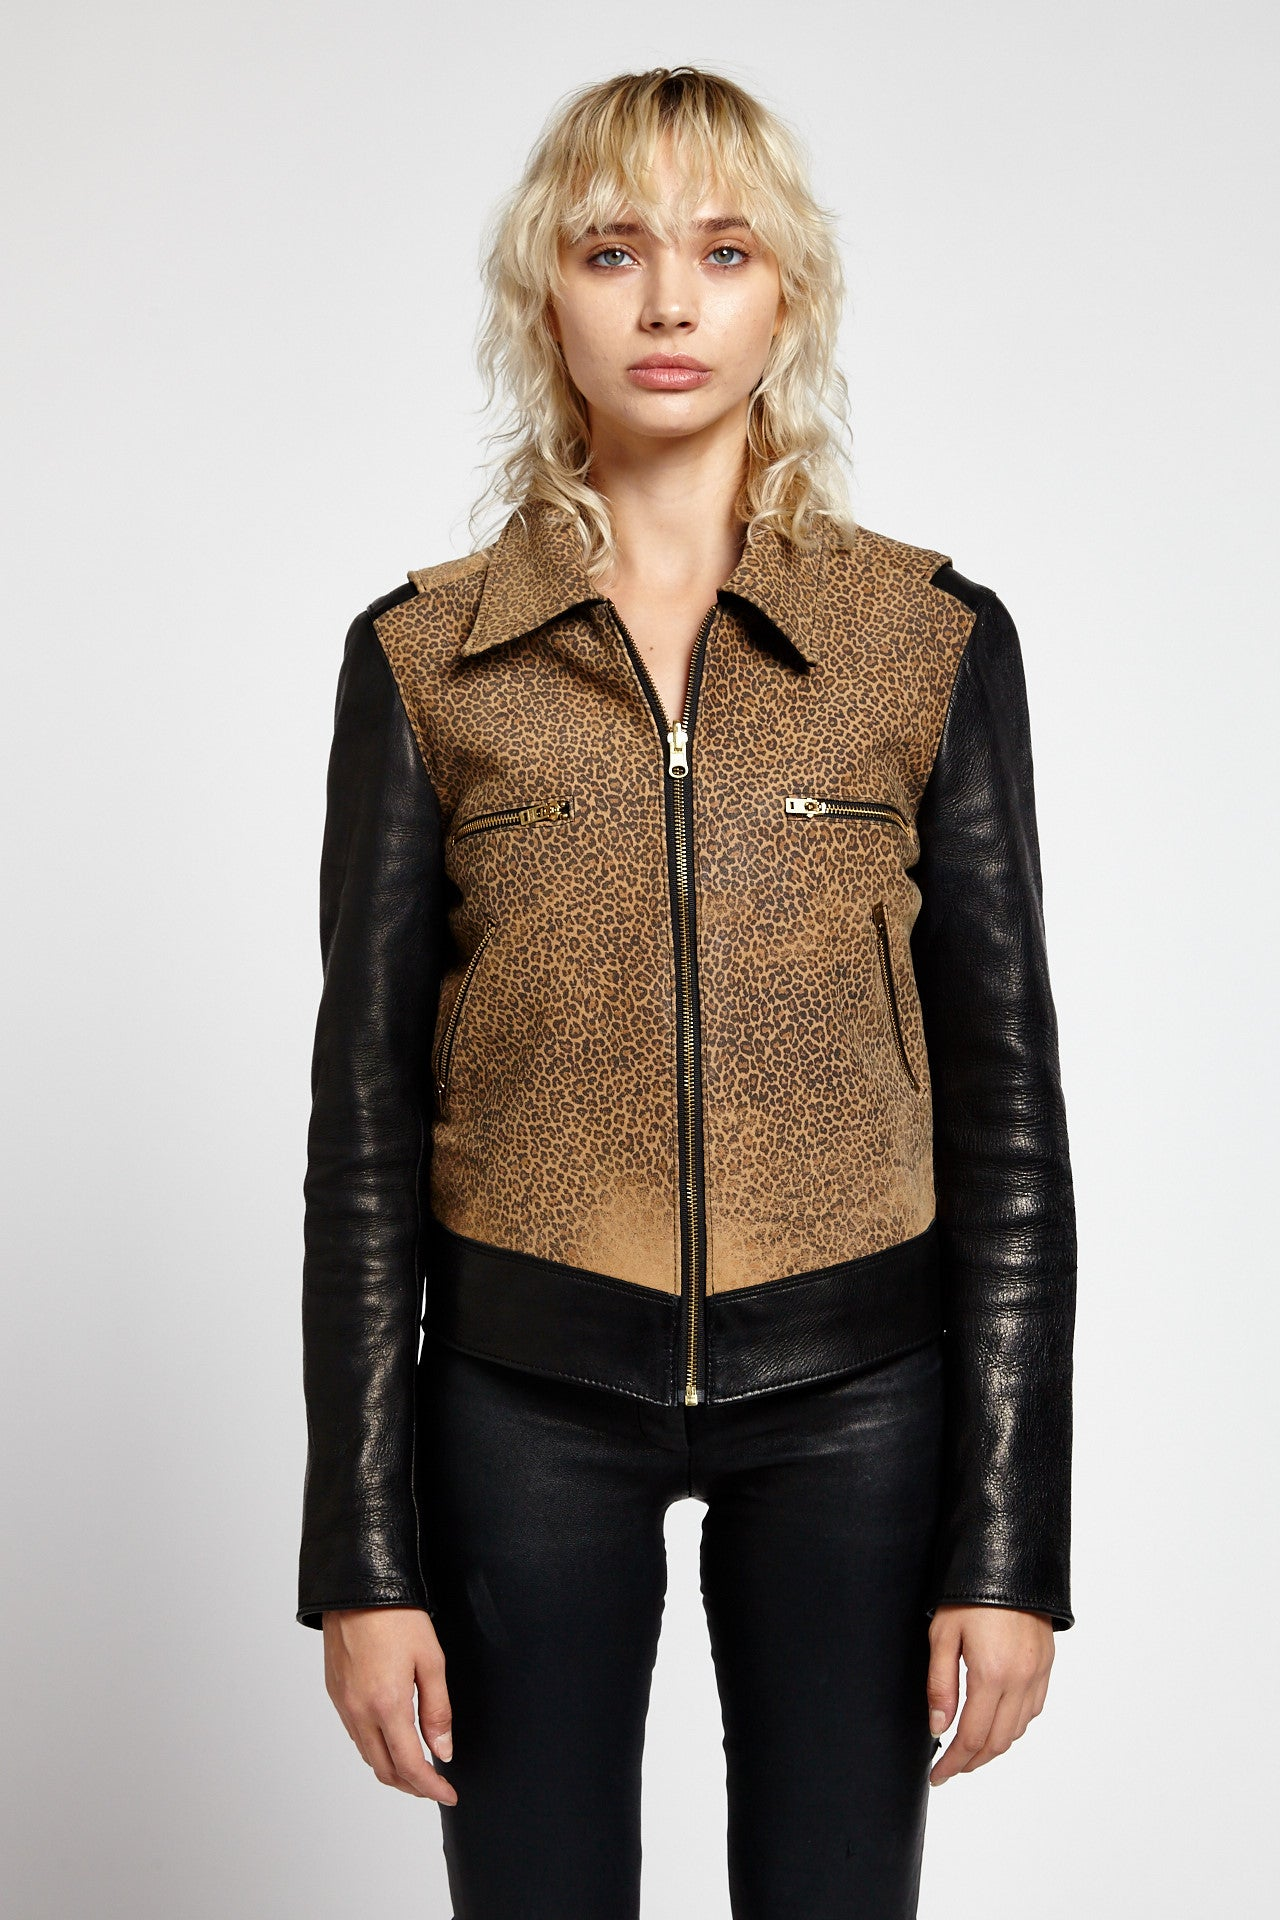 CARNATION LEATHER LEOPARD JACKET-JACKETS-Mundane Official-S/M-Mundane Official